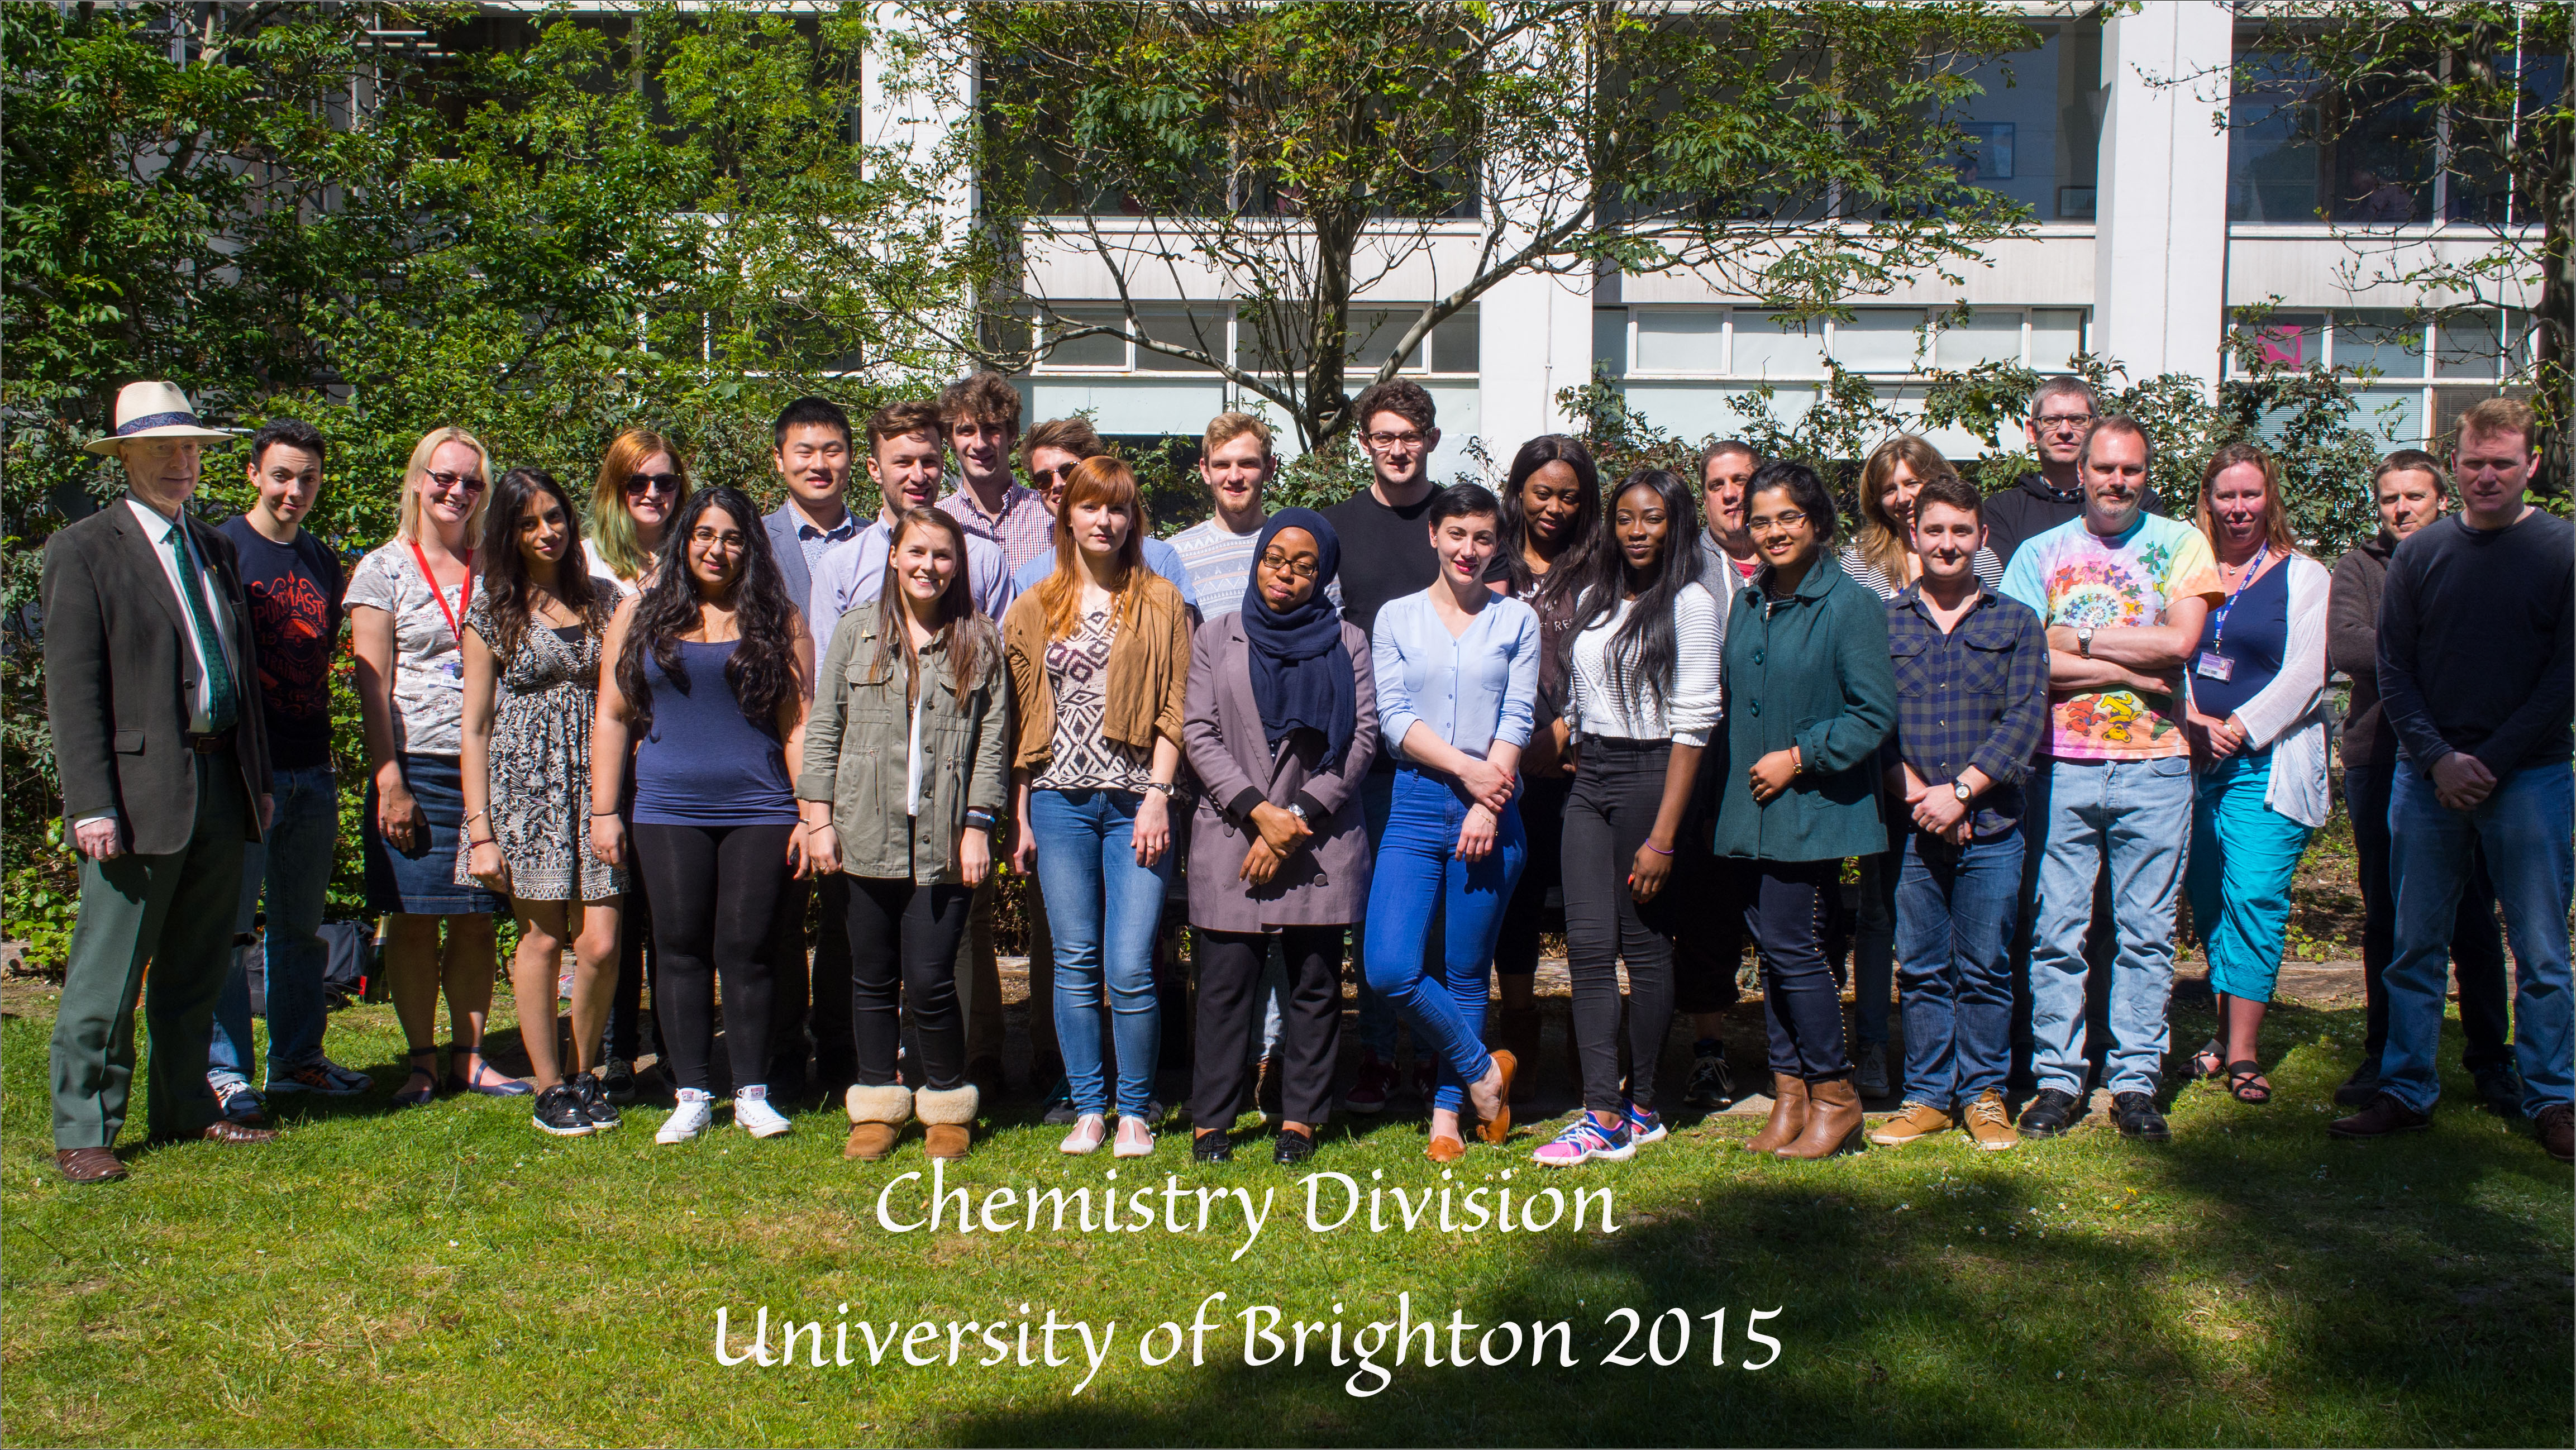 Chemistry Division 2015